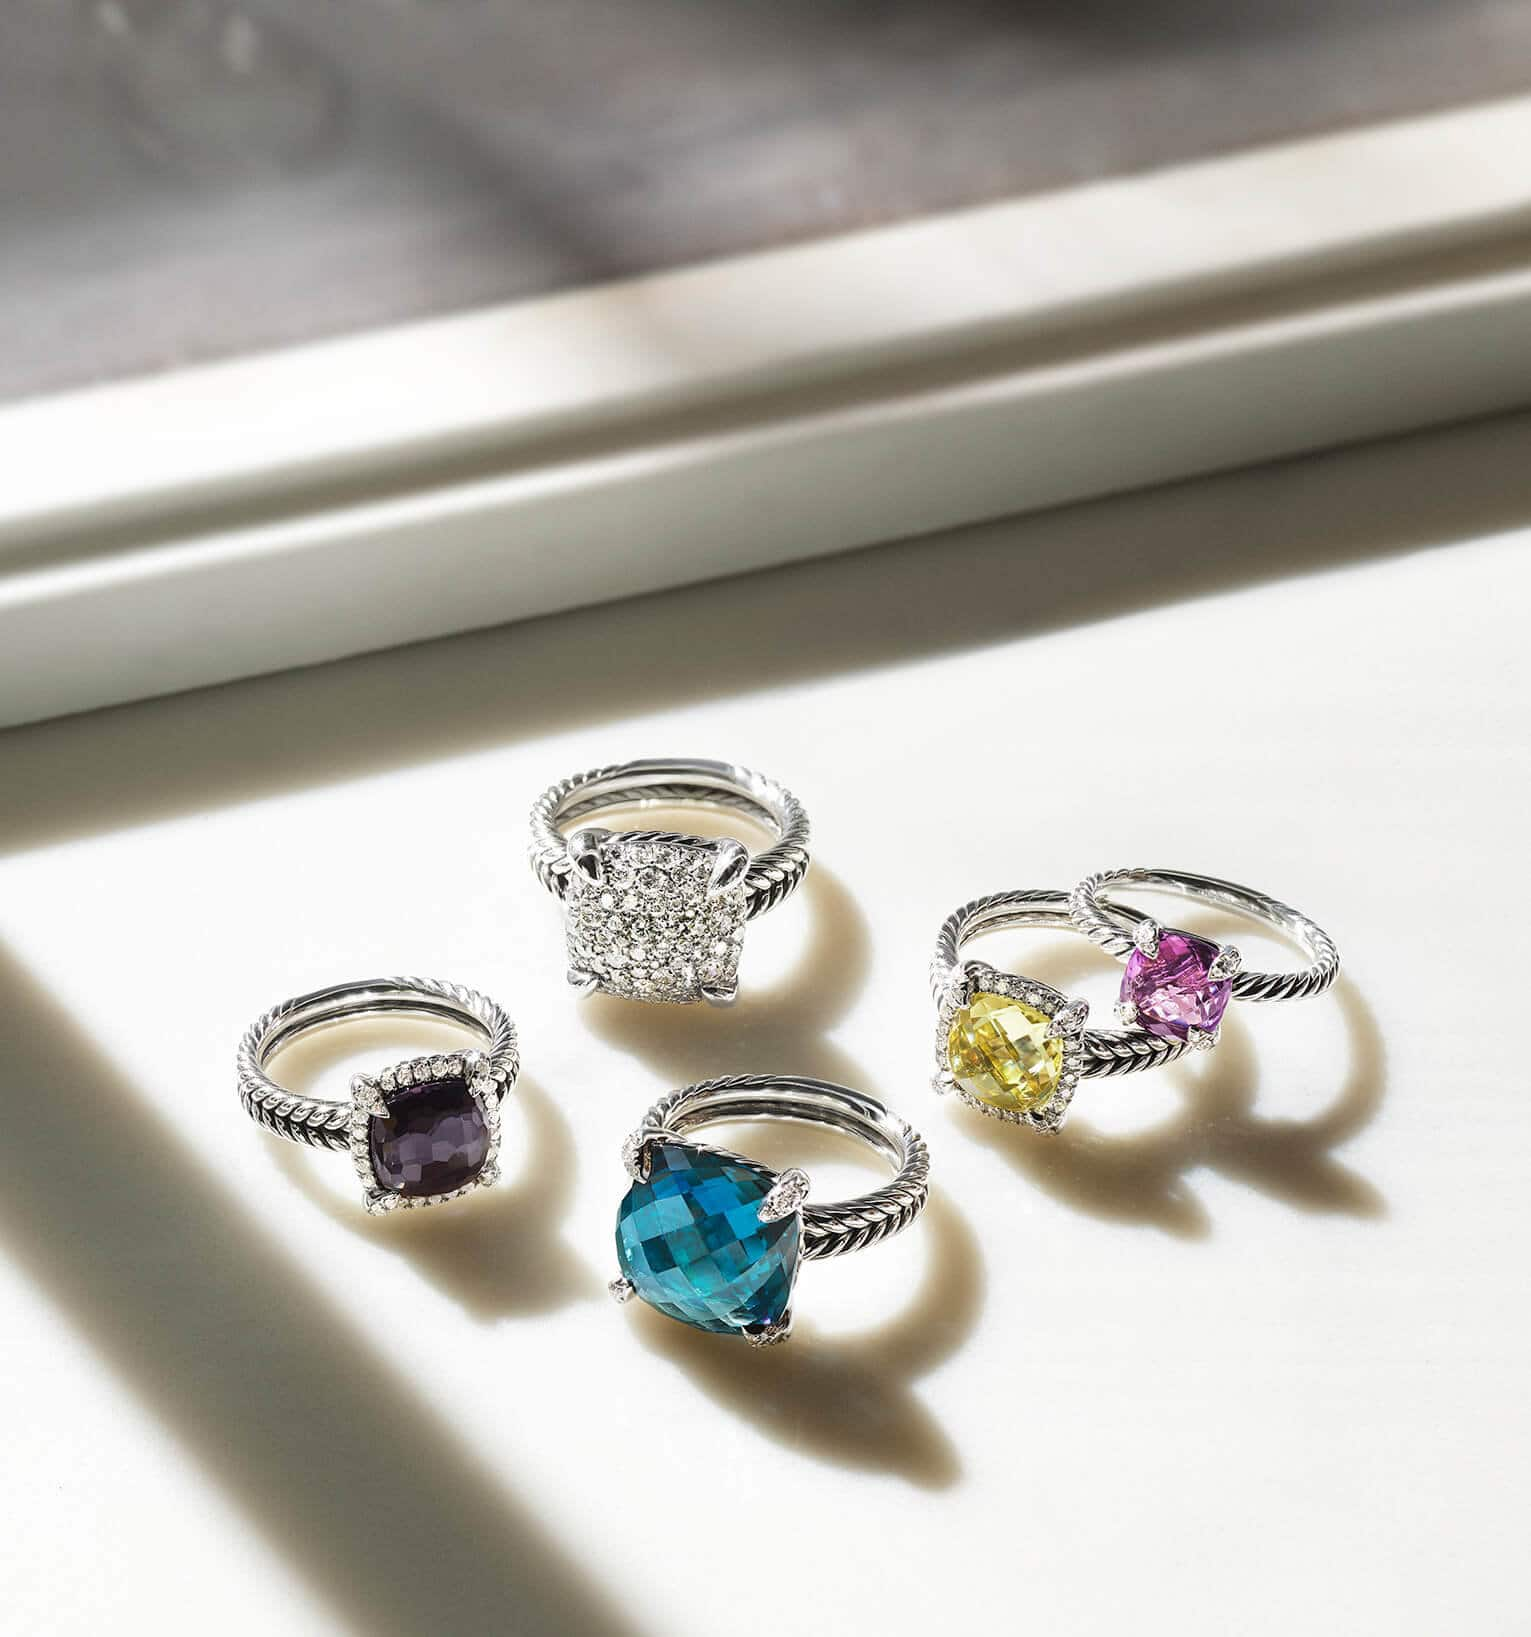 A color photograph shows five David Yurman women's rings from the Châtelaine Collection scattered on a white windowsill with hard shadows and white flowers. The jewelry is crafted from sterling silver with pavé diamonds and with or without a faceted cushion-shaped black orchid, blue topaz, lemon citrine or amethyst center stone.